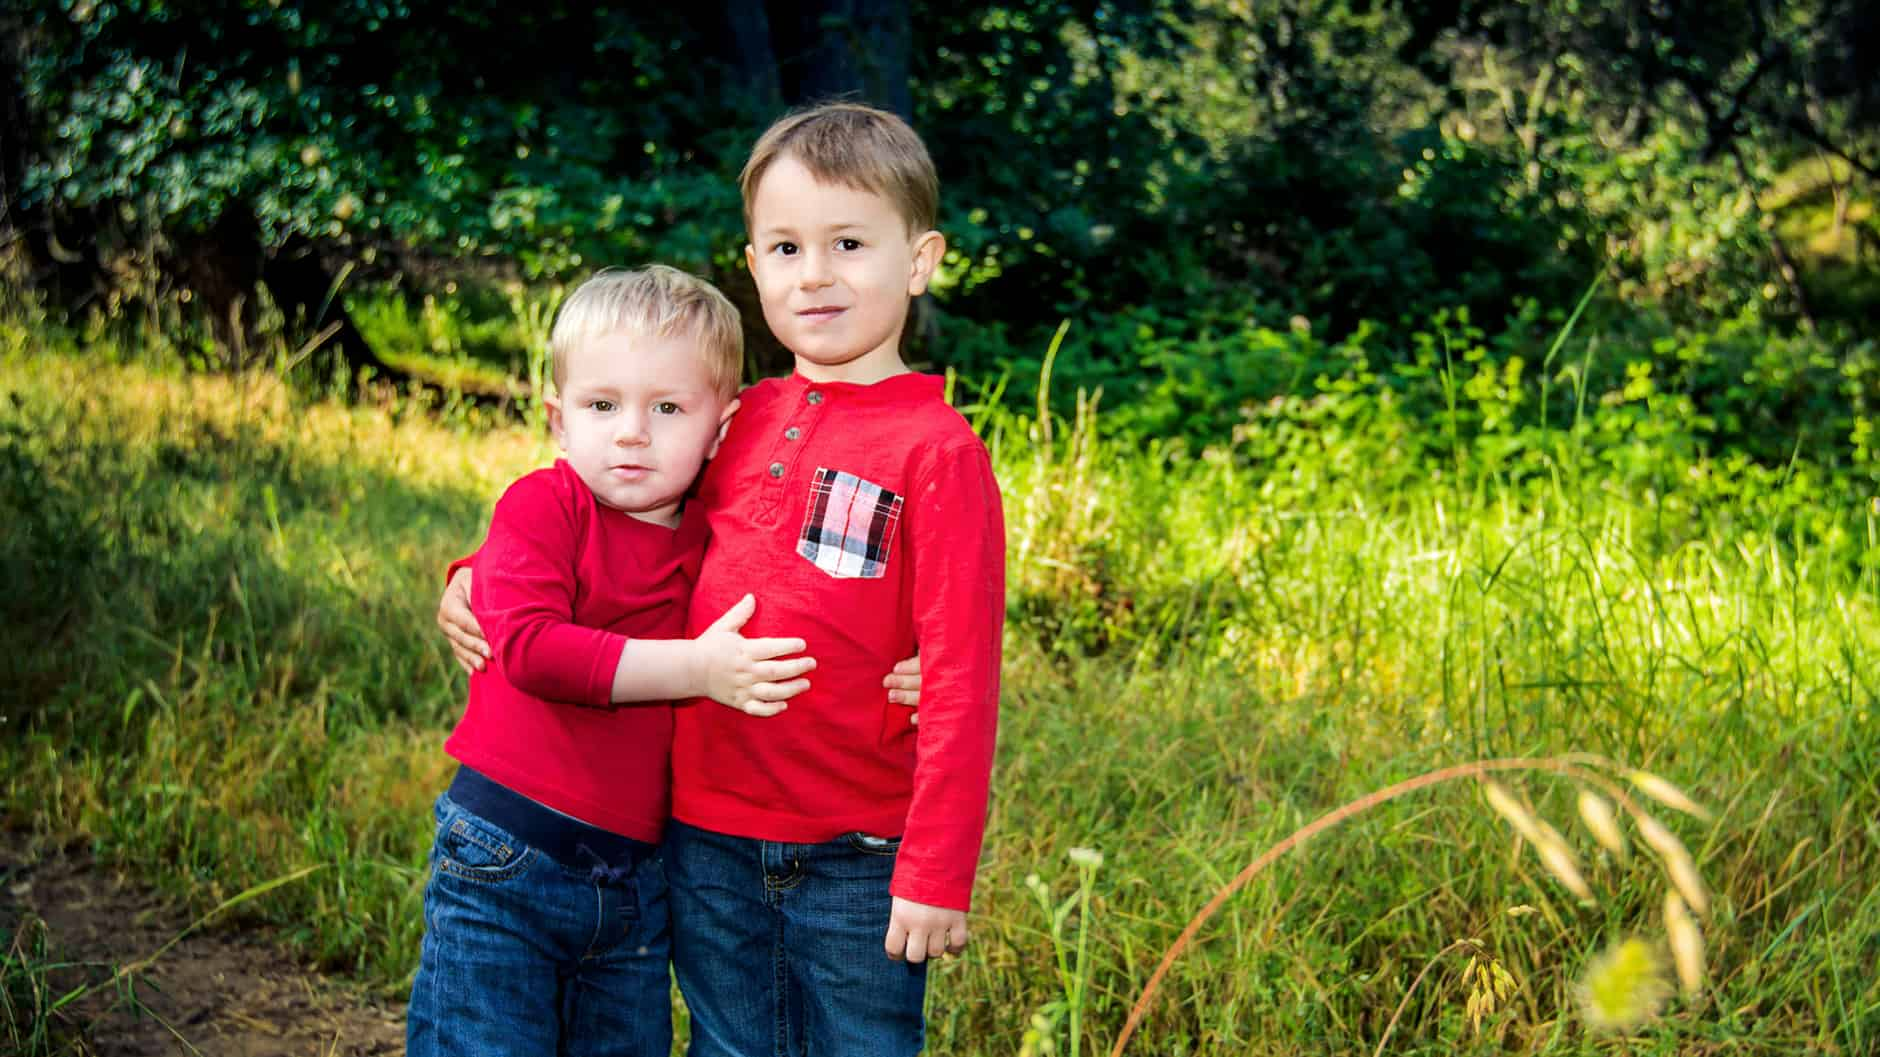 Brothers posing in a field